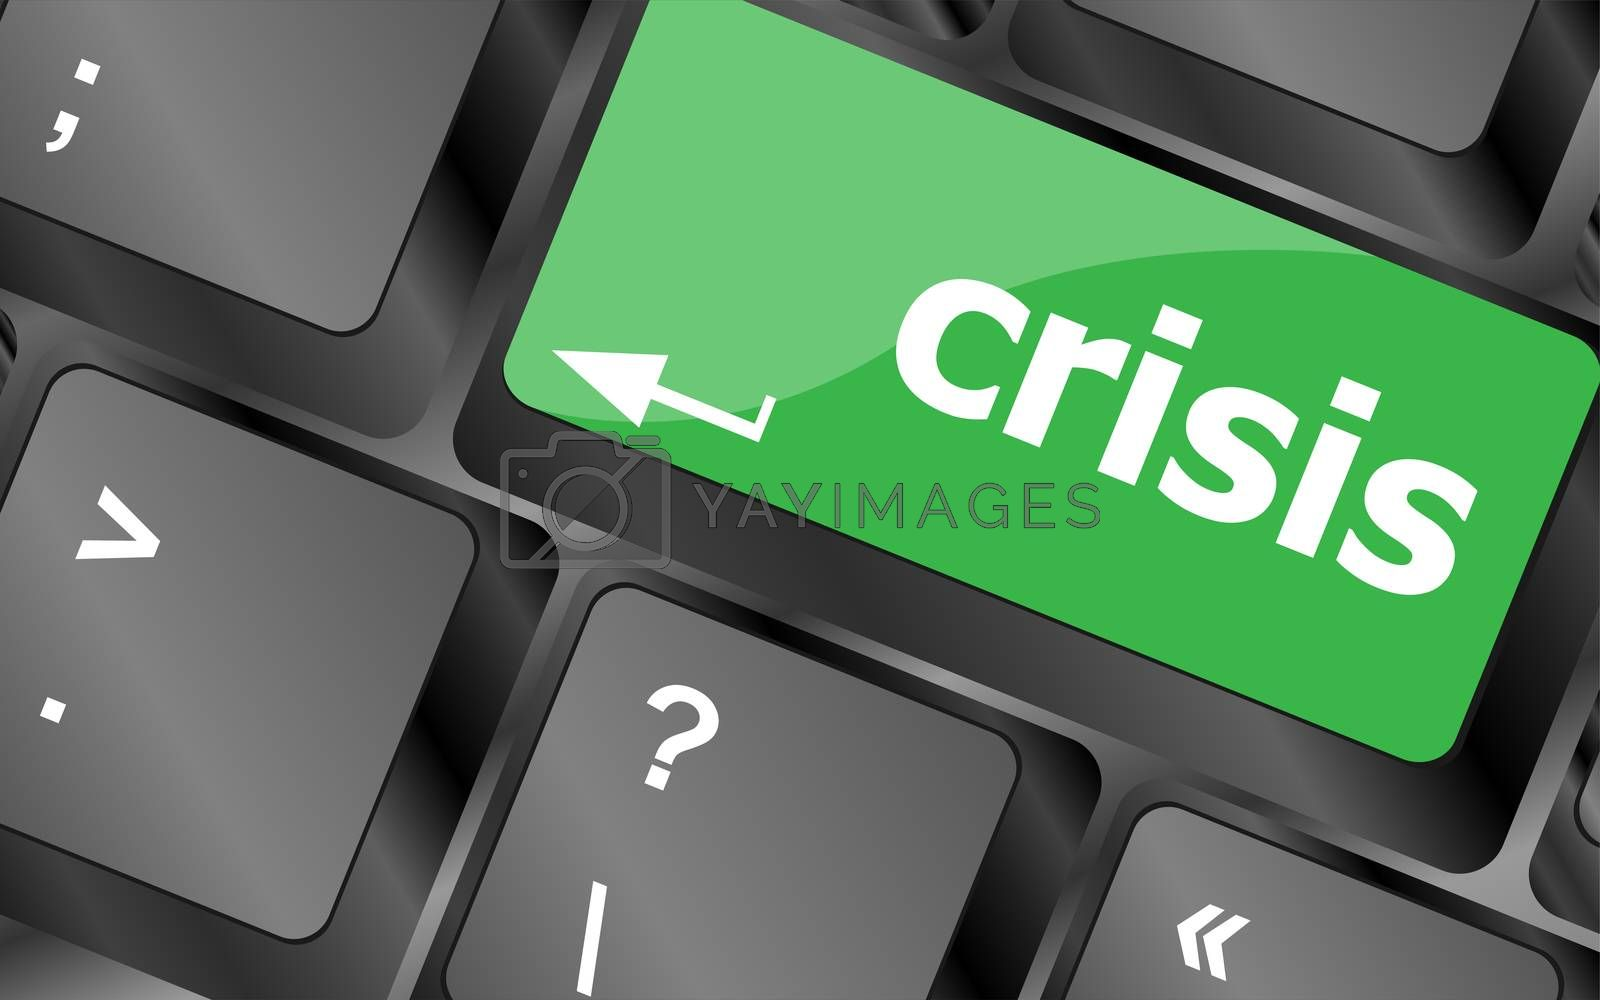 crisis risk management key showing business insurance concept by fotoscool